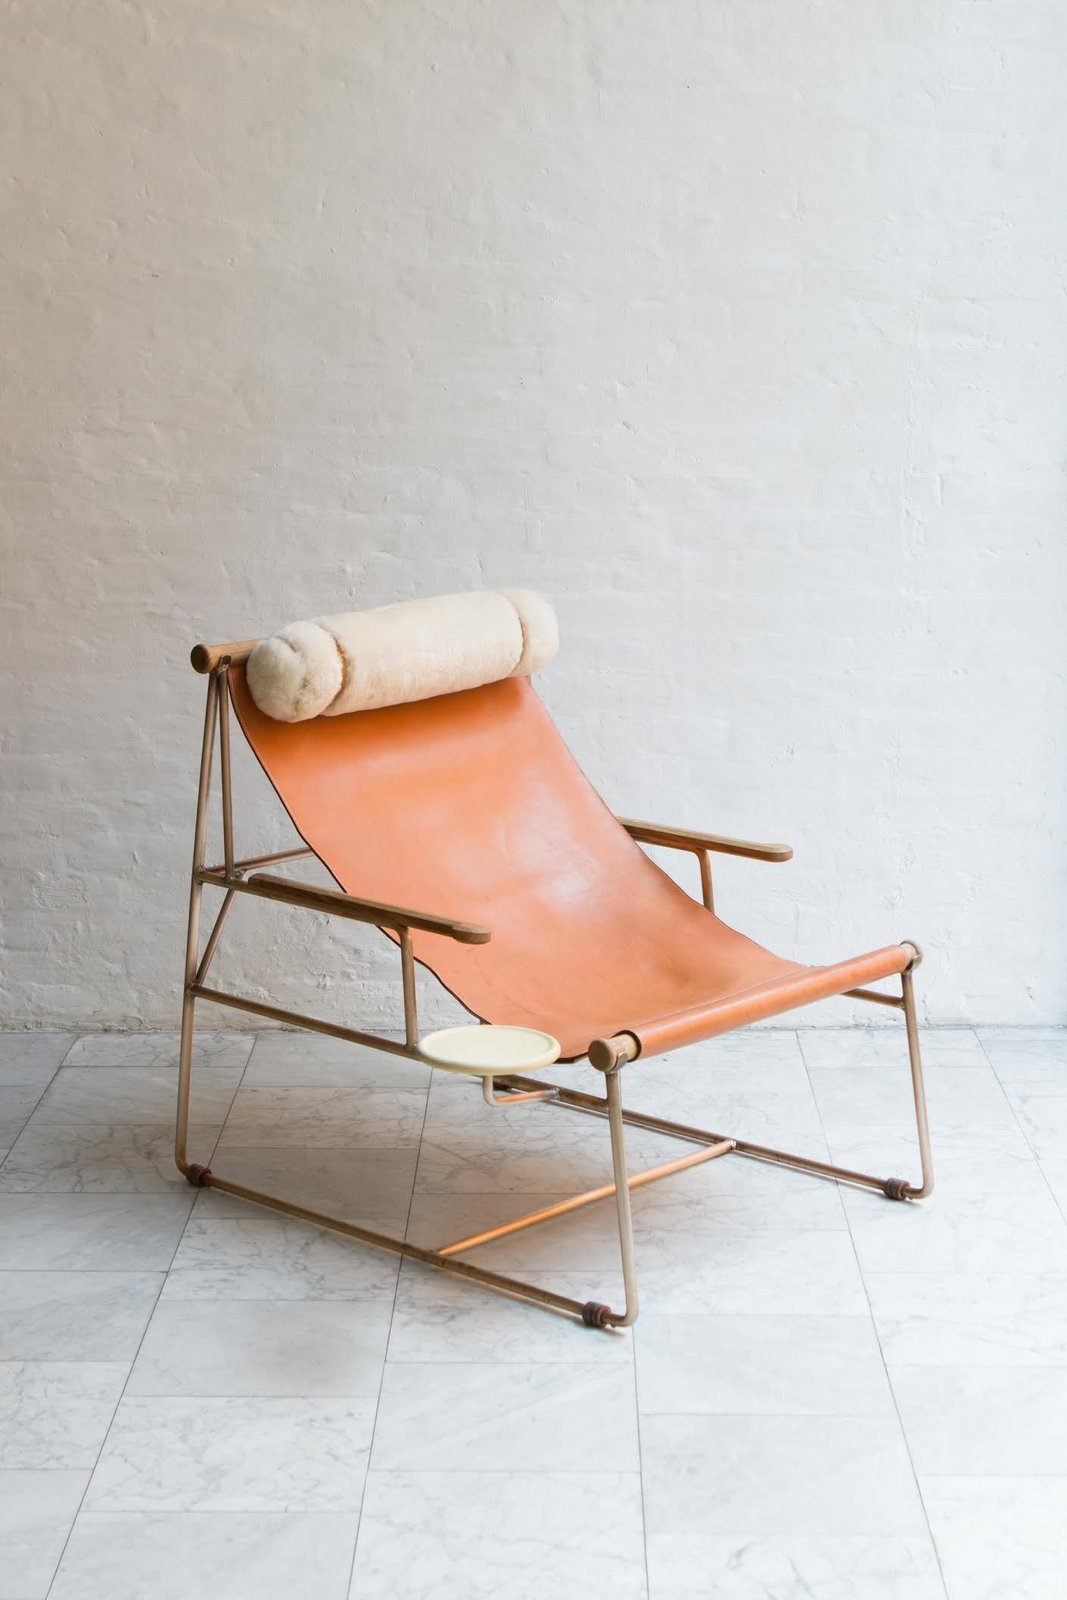 Deck Chair by BDDW, $5,880  Made at BDDW's Philadelphia workshop, this generously proprortioned chair is made from a leather sling seat, metal, frame, and shearling head cushion. A small circular tray begs for an ice-cold drink (beer coozie not included).  Photo 3 of 10 in Favorite Chairs